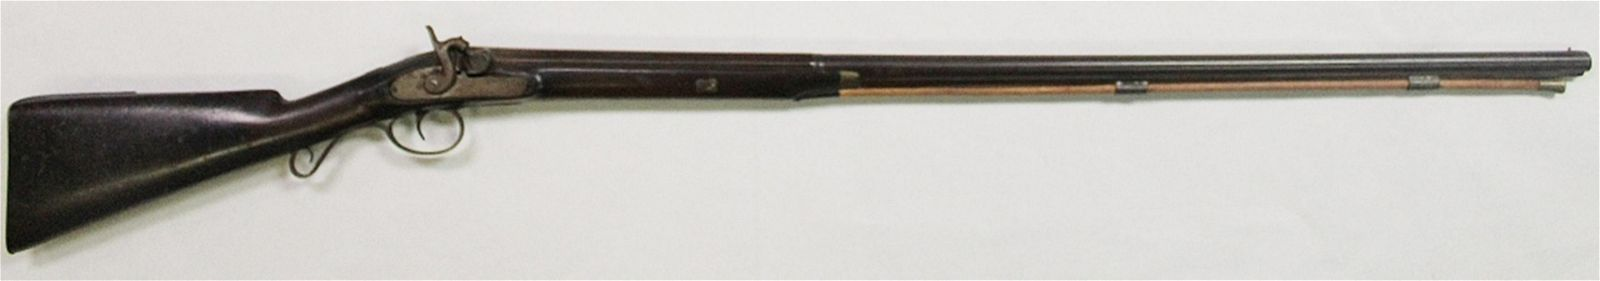 UNMARKED CIVIL WAR MUSKET